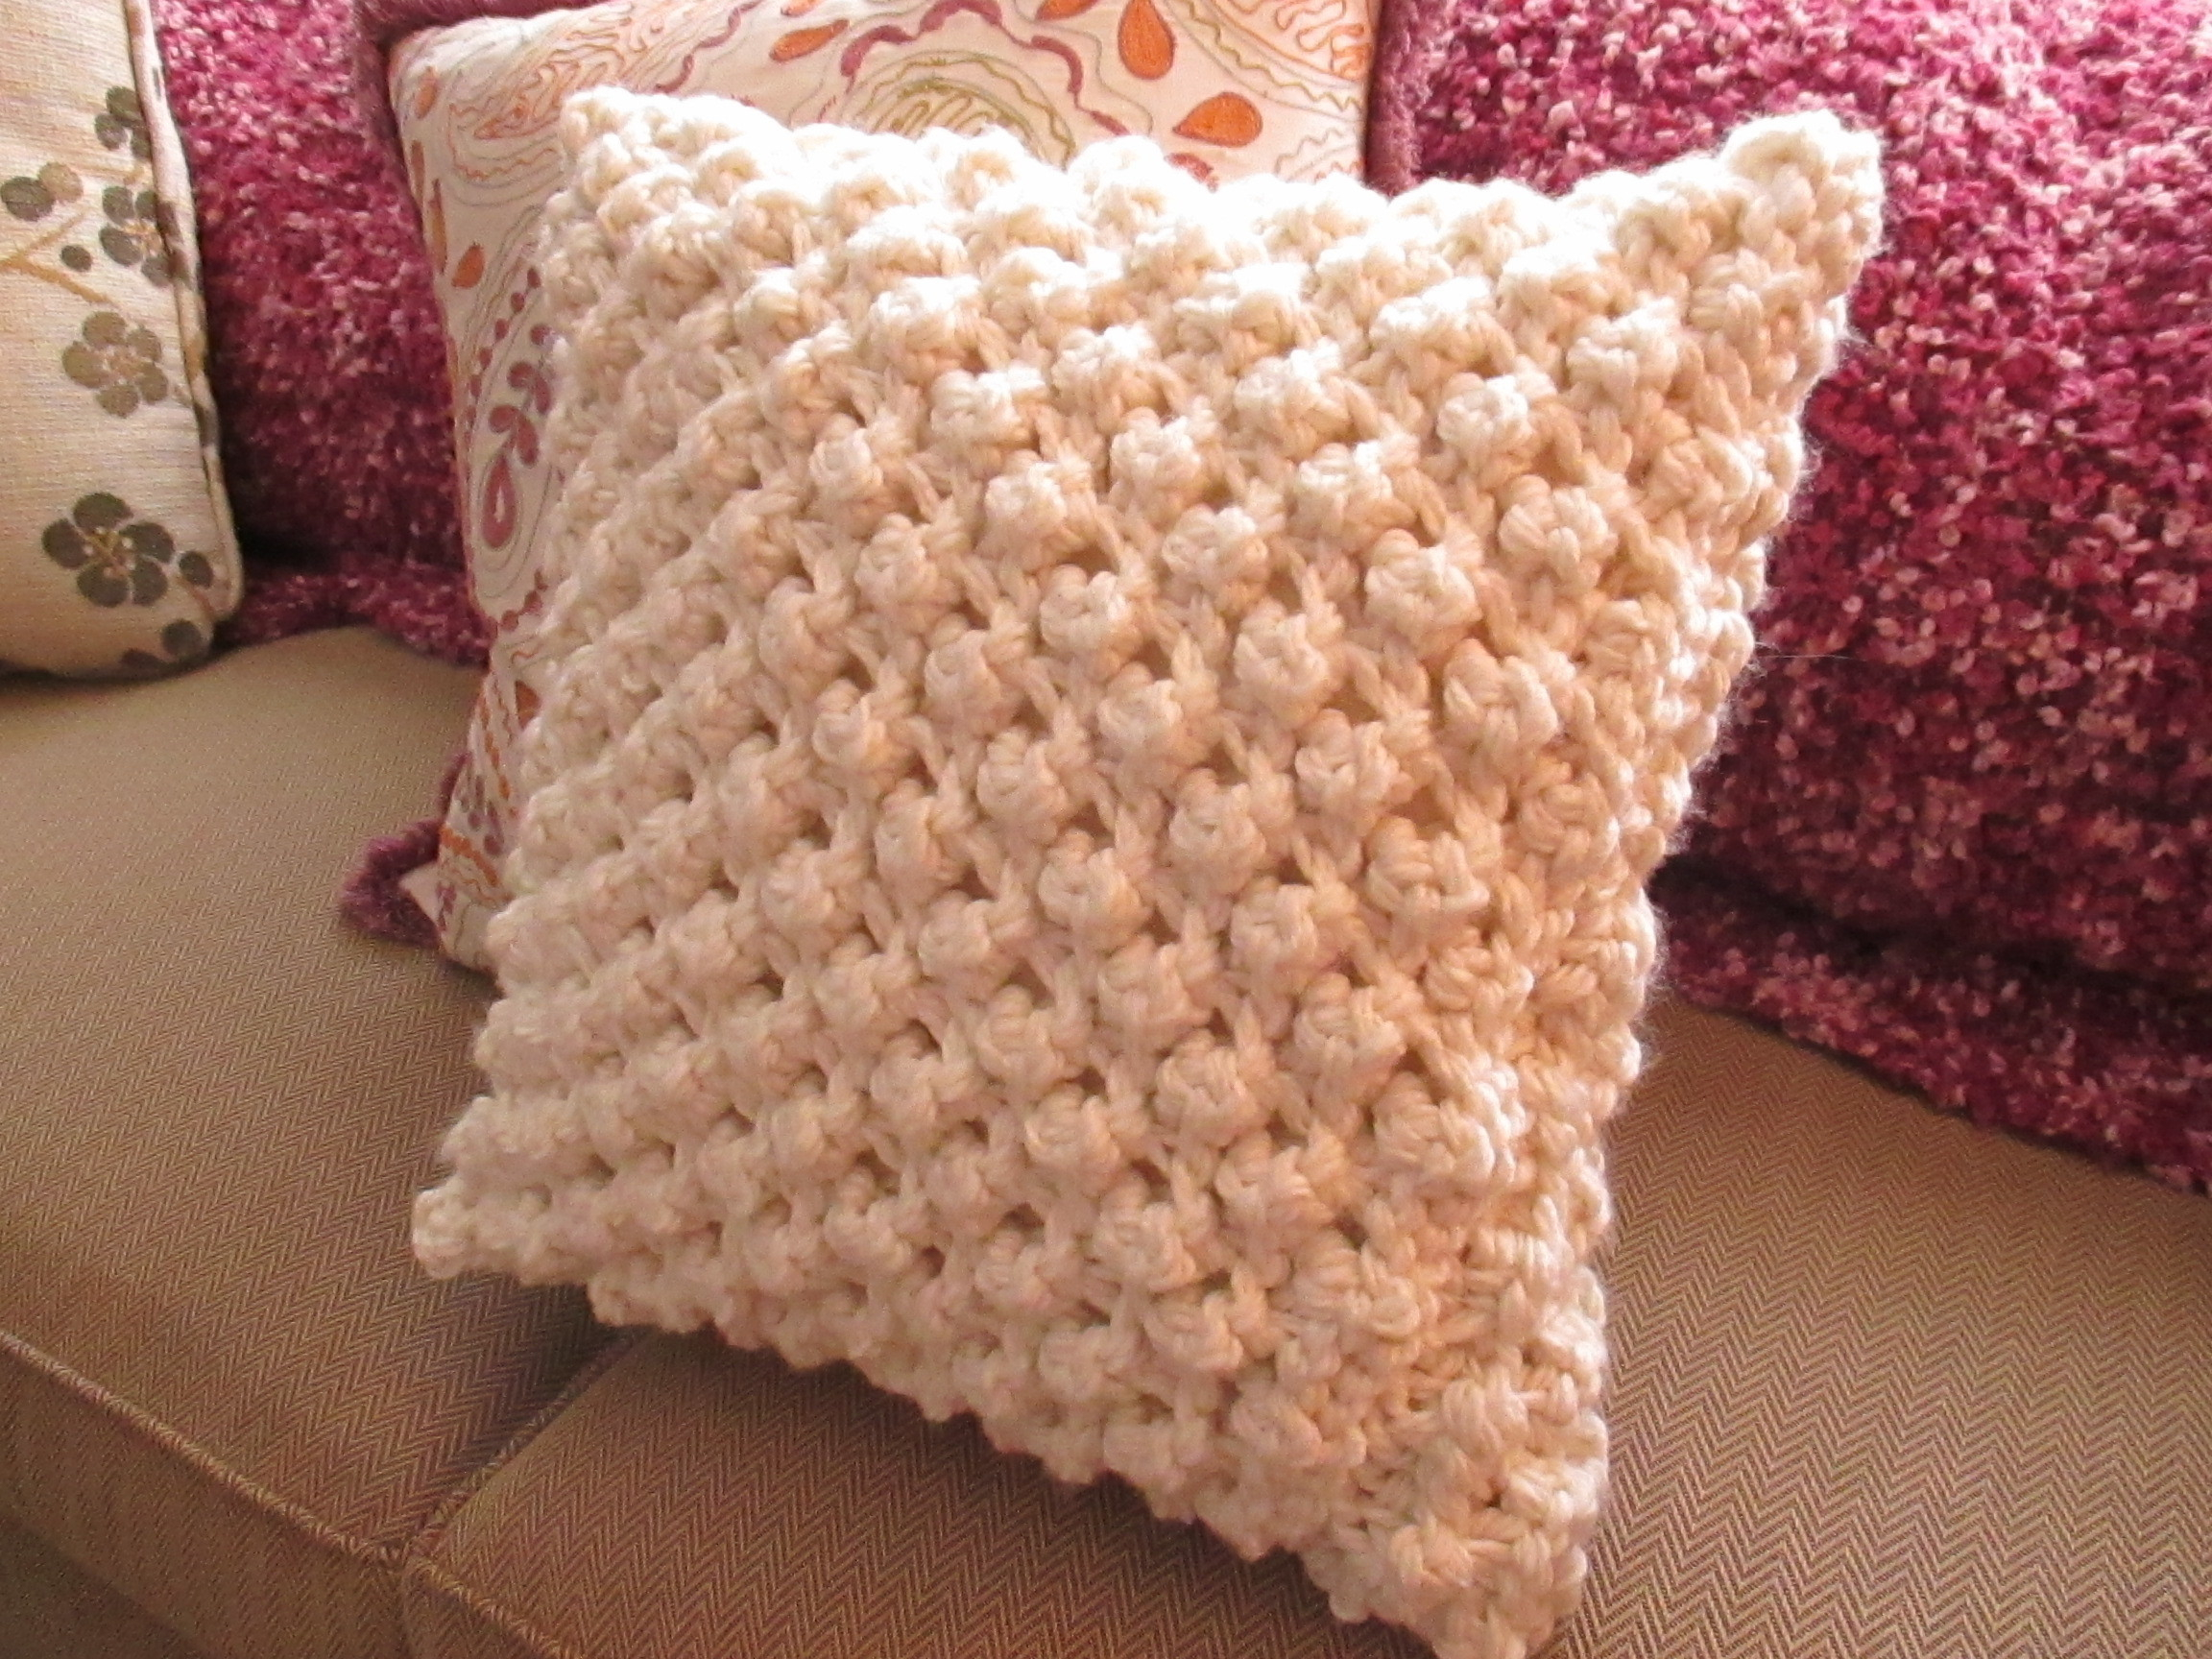 Free Cushion Knitting Patterns Popcorn Knit Pillow Cover How To Stitch A Knit Or Crochet Cushion